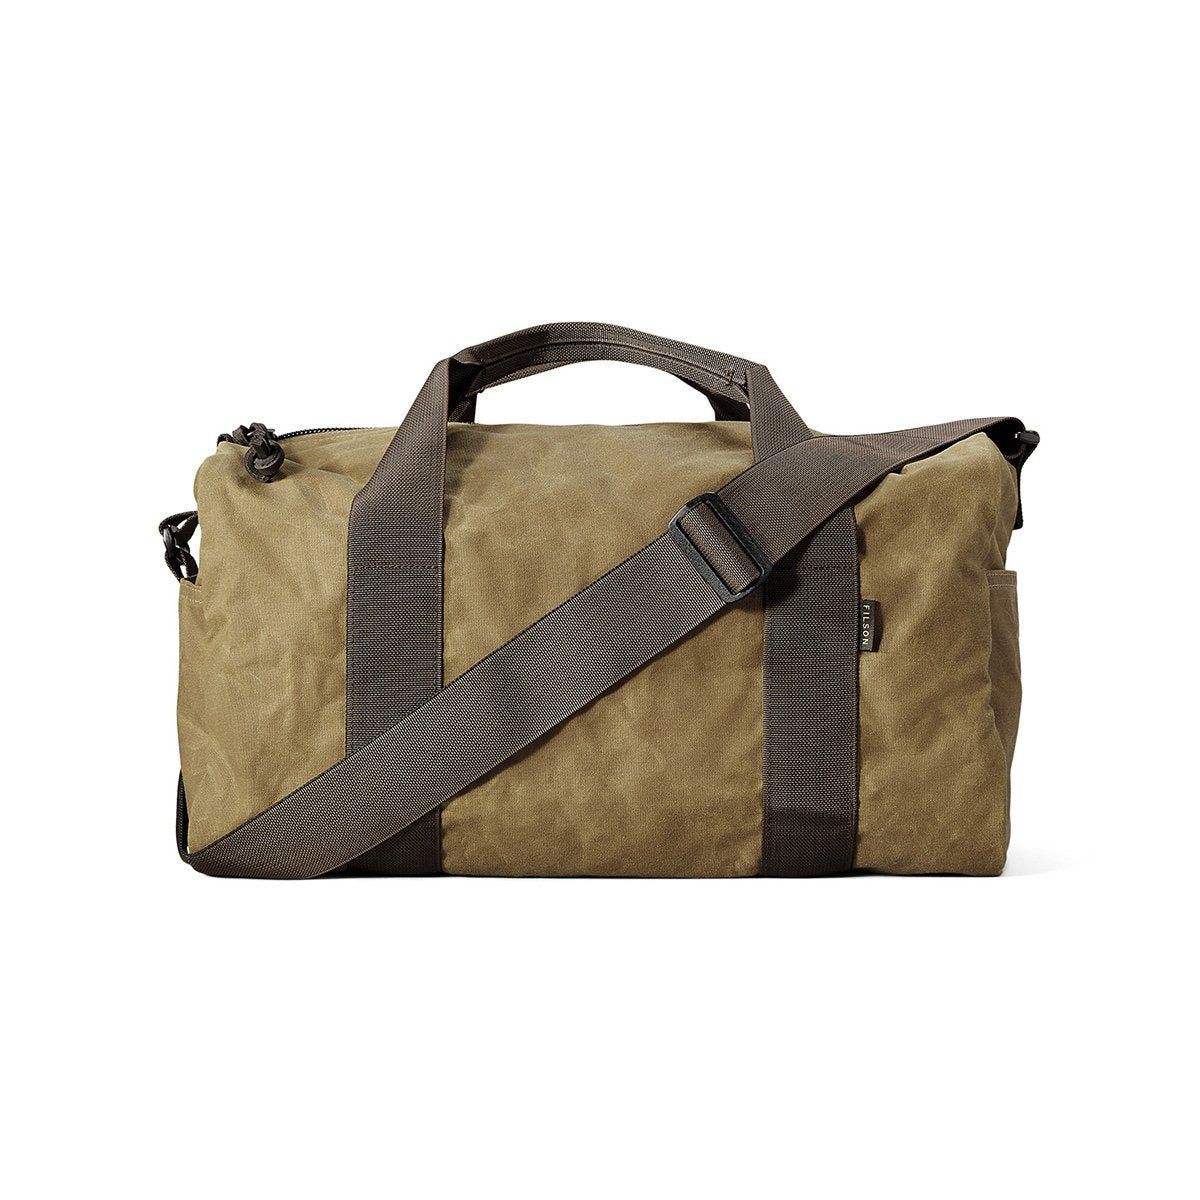 11070110-DTB, Filson, Small Tin Cloth Field Duffle Bag, Dark Tan/Brown, Mens Overnight Bag